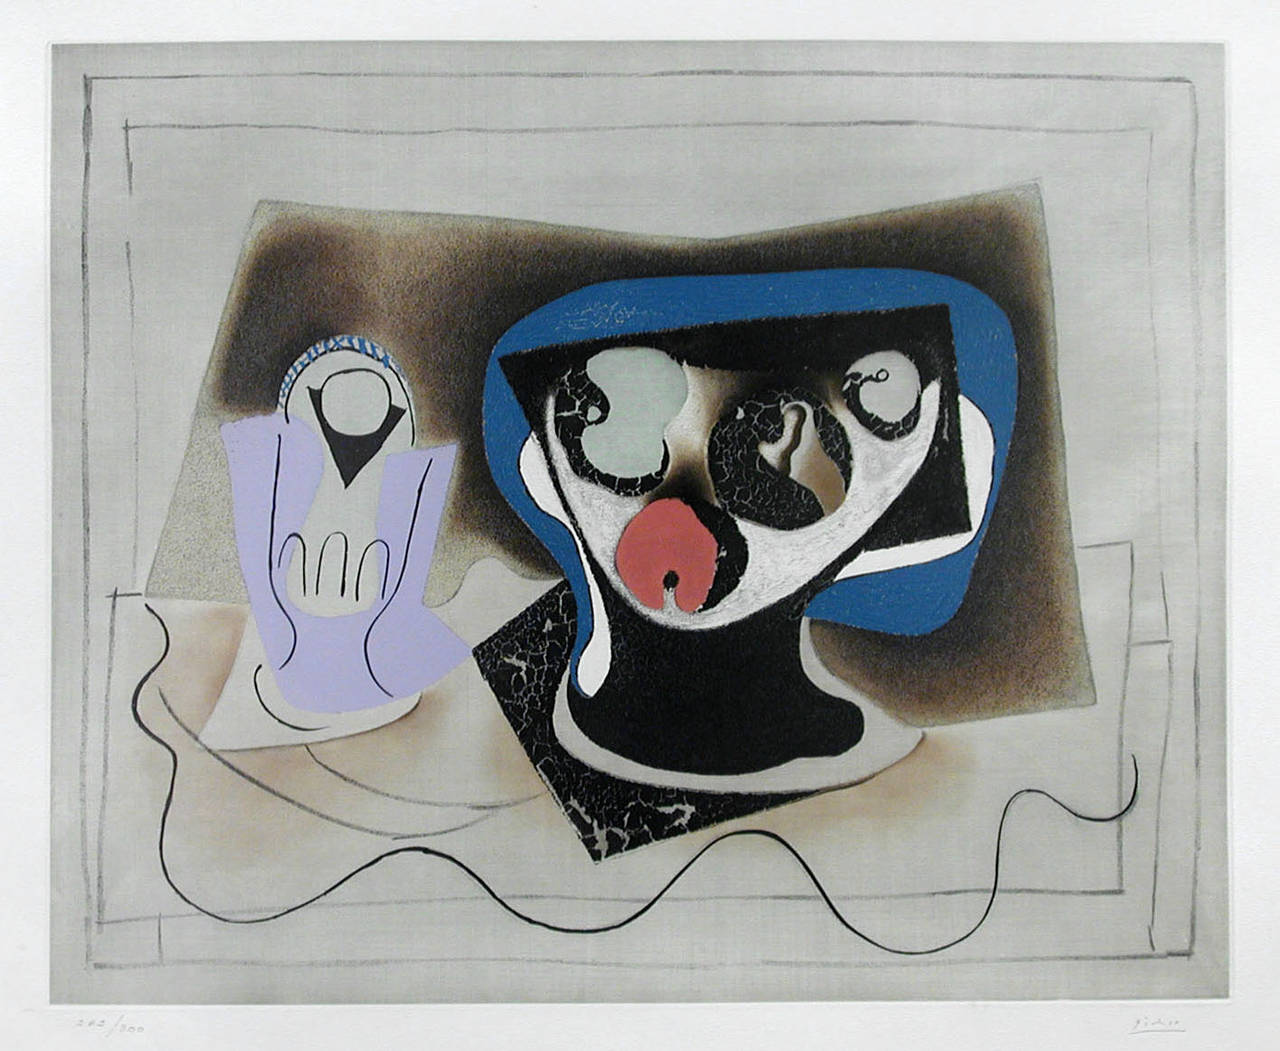 pablo picassos life works and contributions to art essay Pablo picasso pablo picasso was born in malaga in 1881 pablo was the son of a respected art teacher, and due to his father's influence, pablo was the son of a respected art teacher, and due to his father's influence.